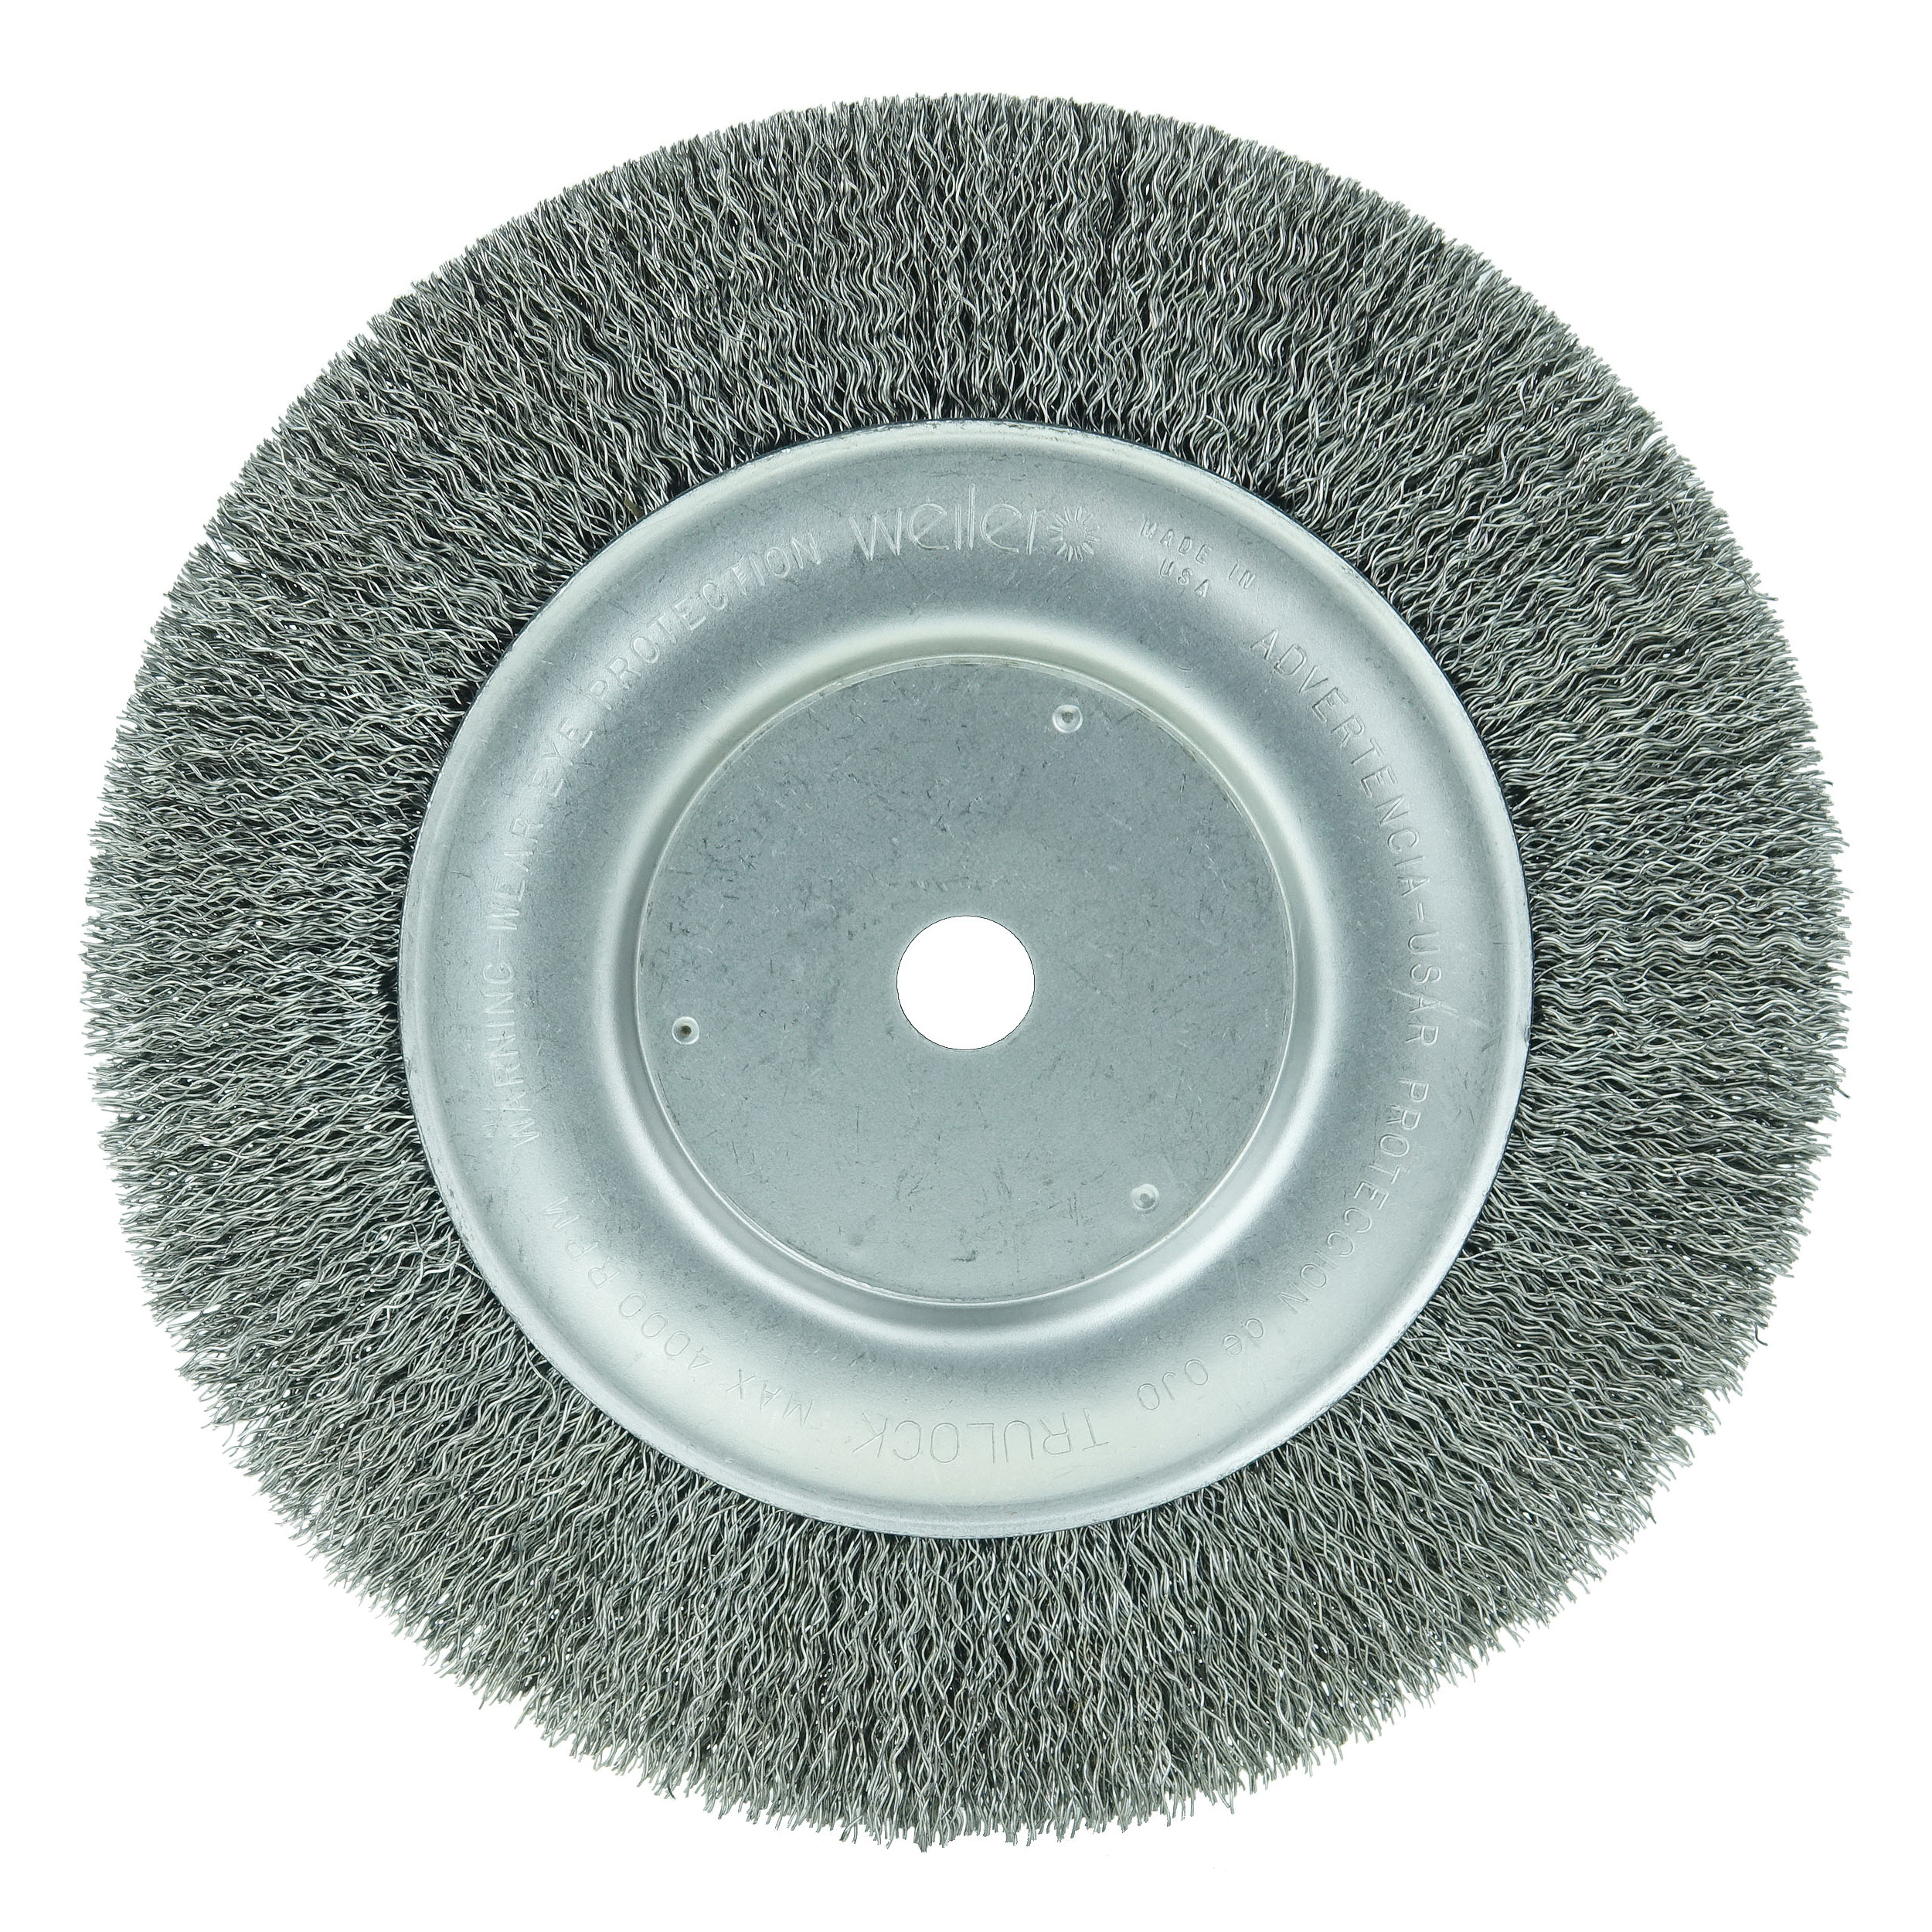 Weiler® 01178 Narrow Face Wheel Brush, 8 in Dia Brush, 3/4 in W Face, 0.014 in Dia Crimped Filament/Wire, 3/4 in Arbor Hole